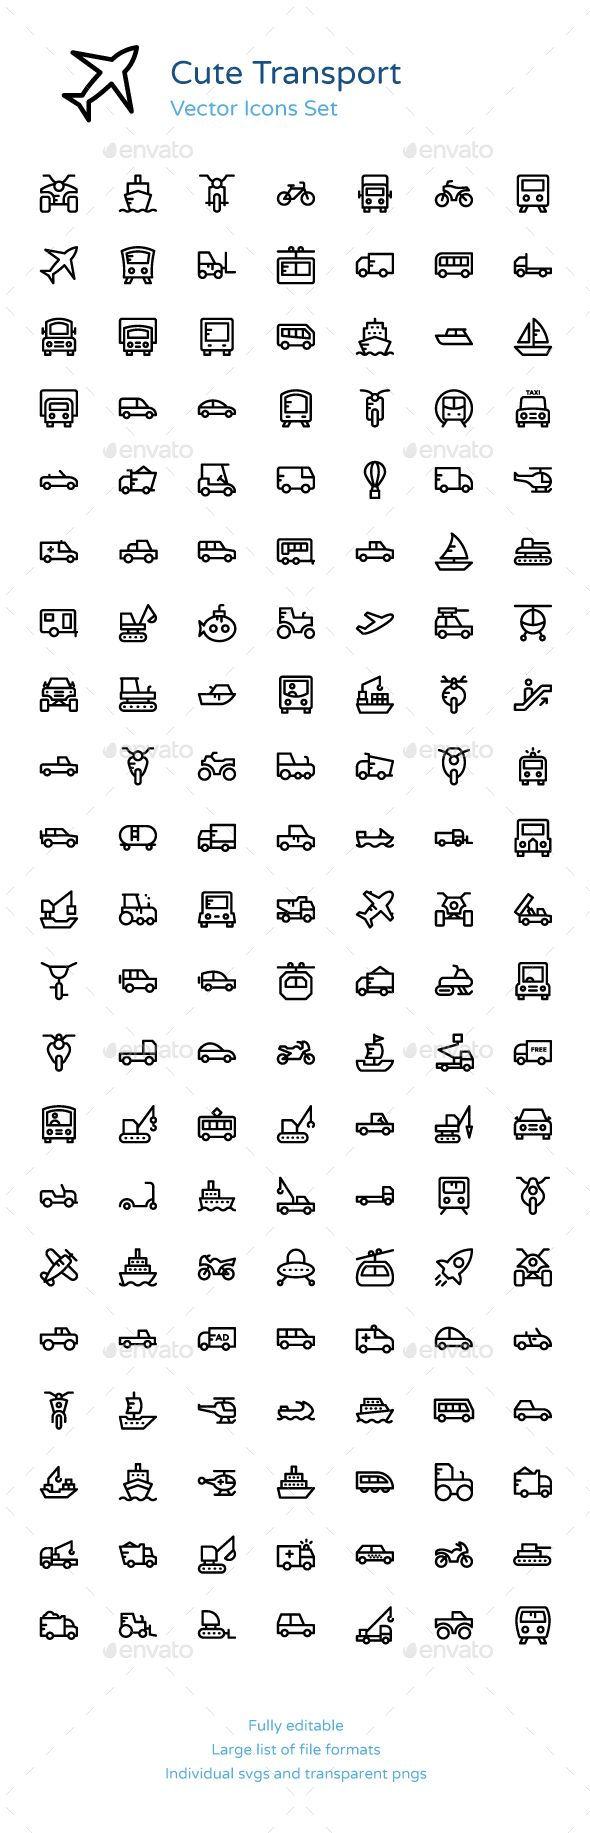 125+ Cute Transport Vector Icons